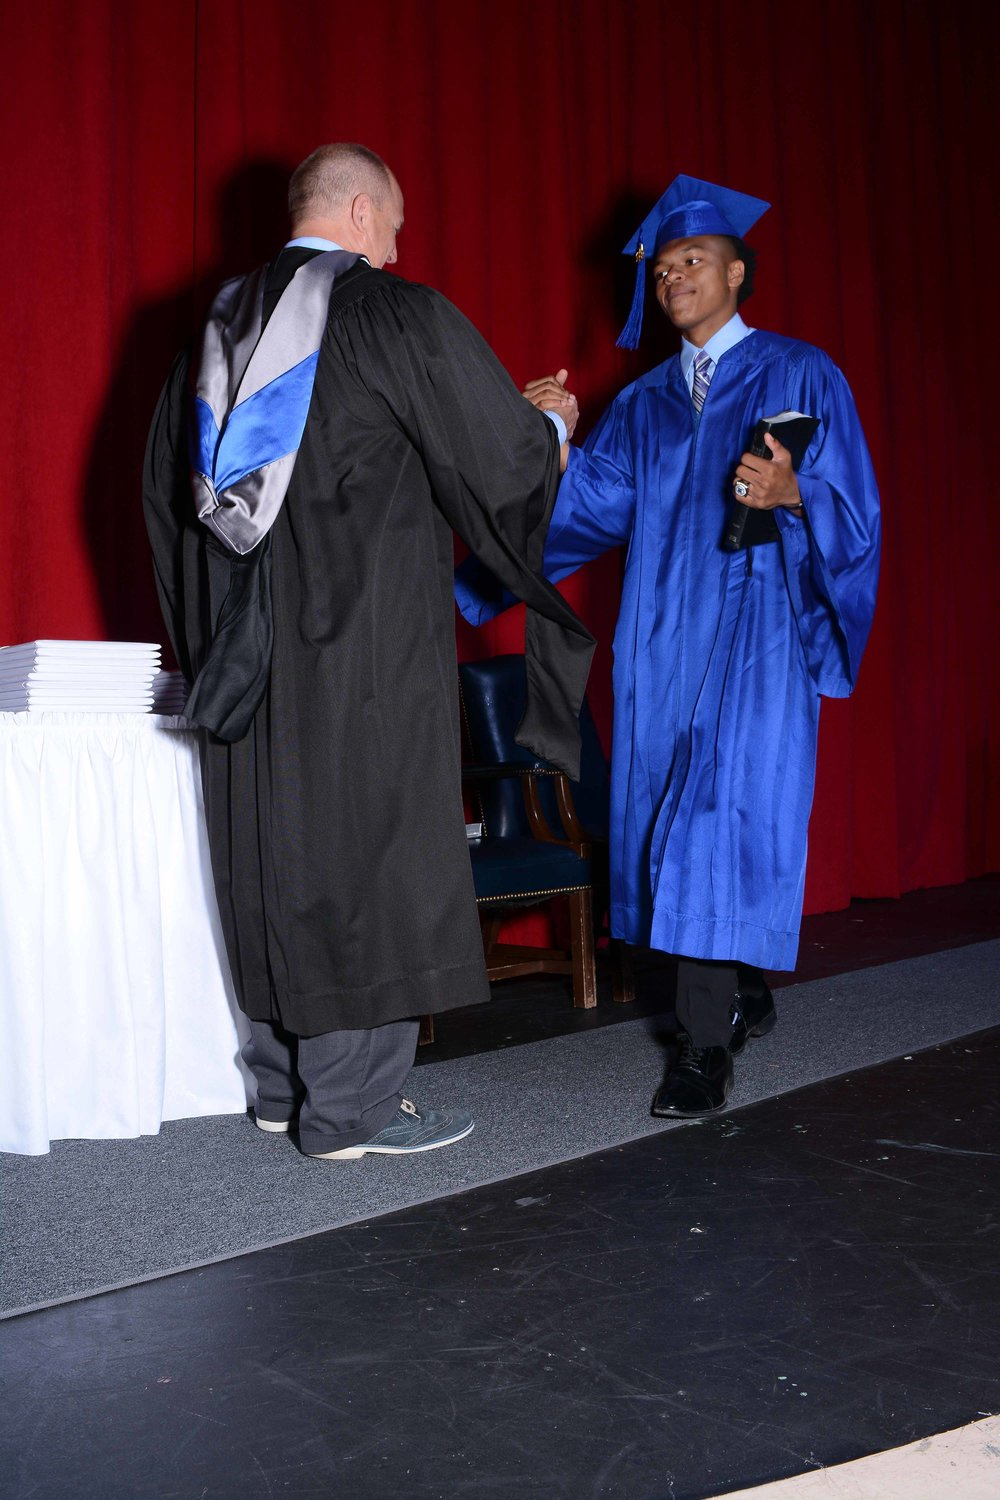 May14 Commencement84.jpg